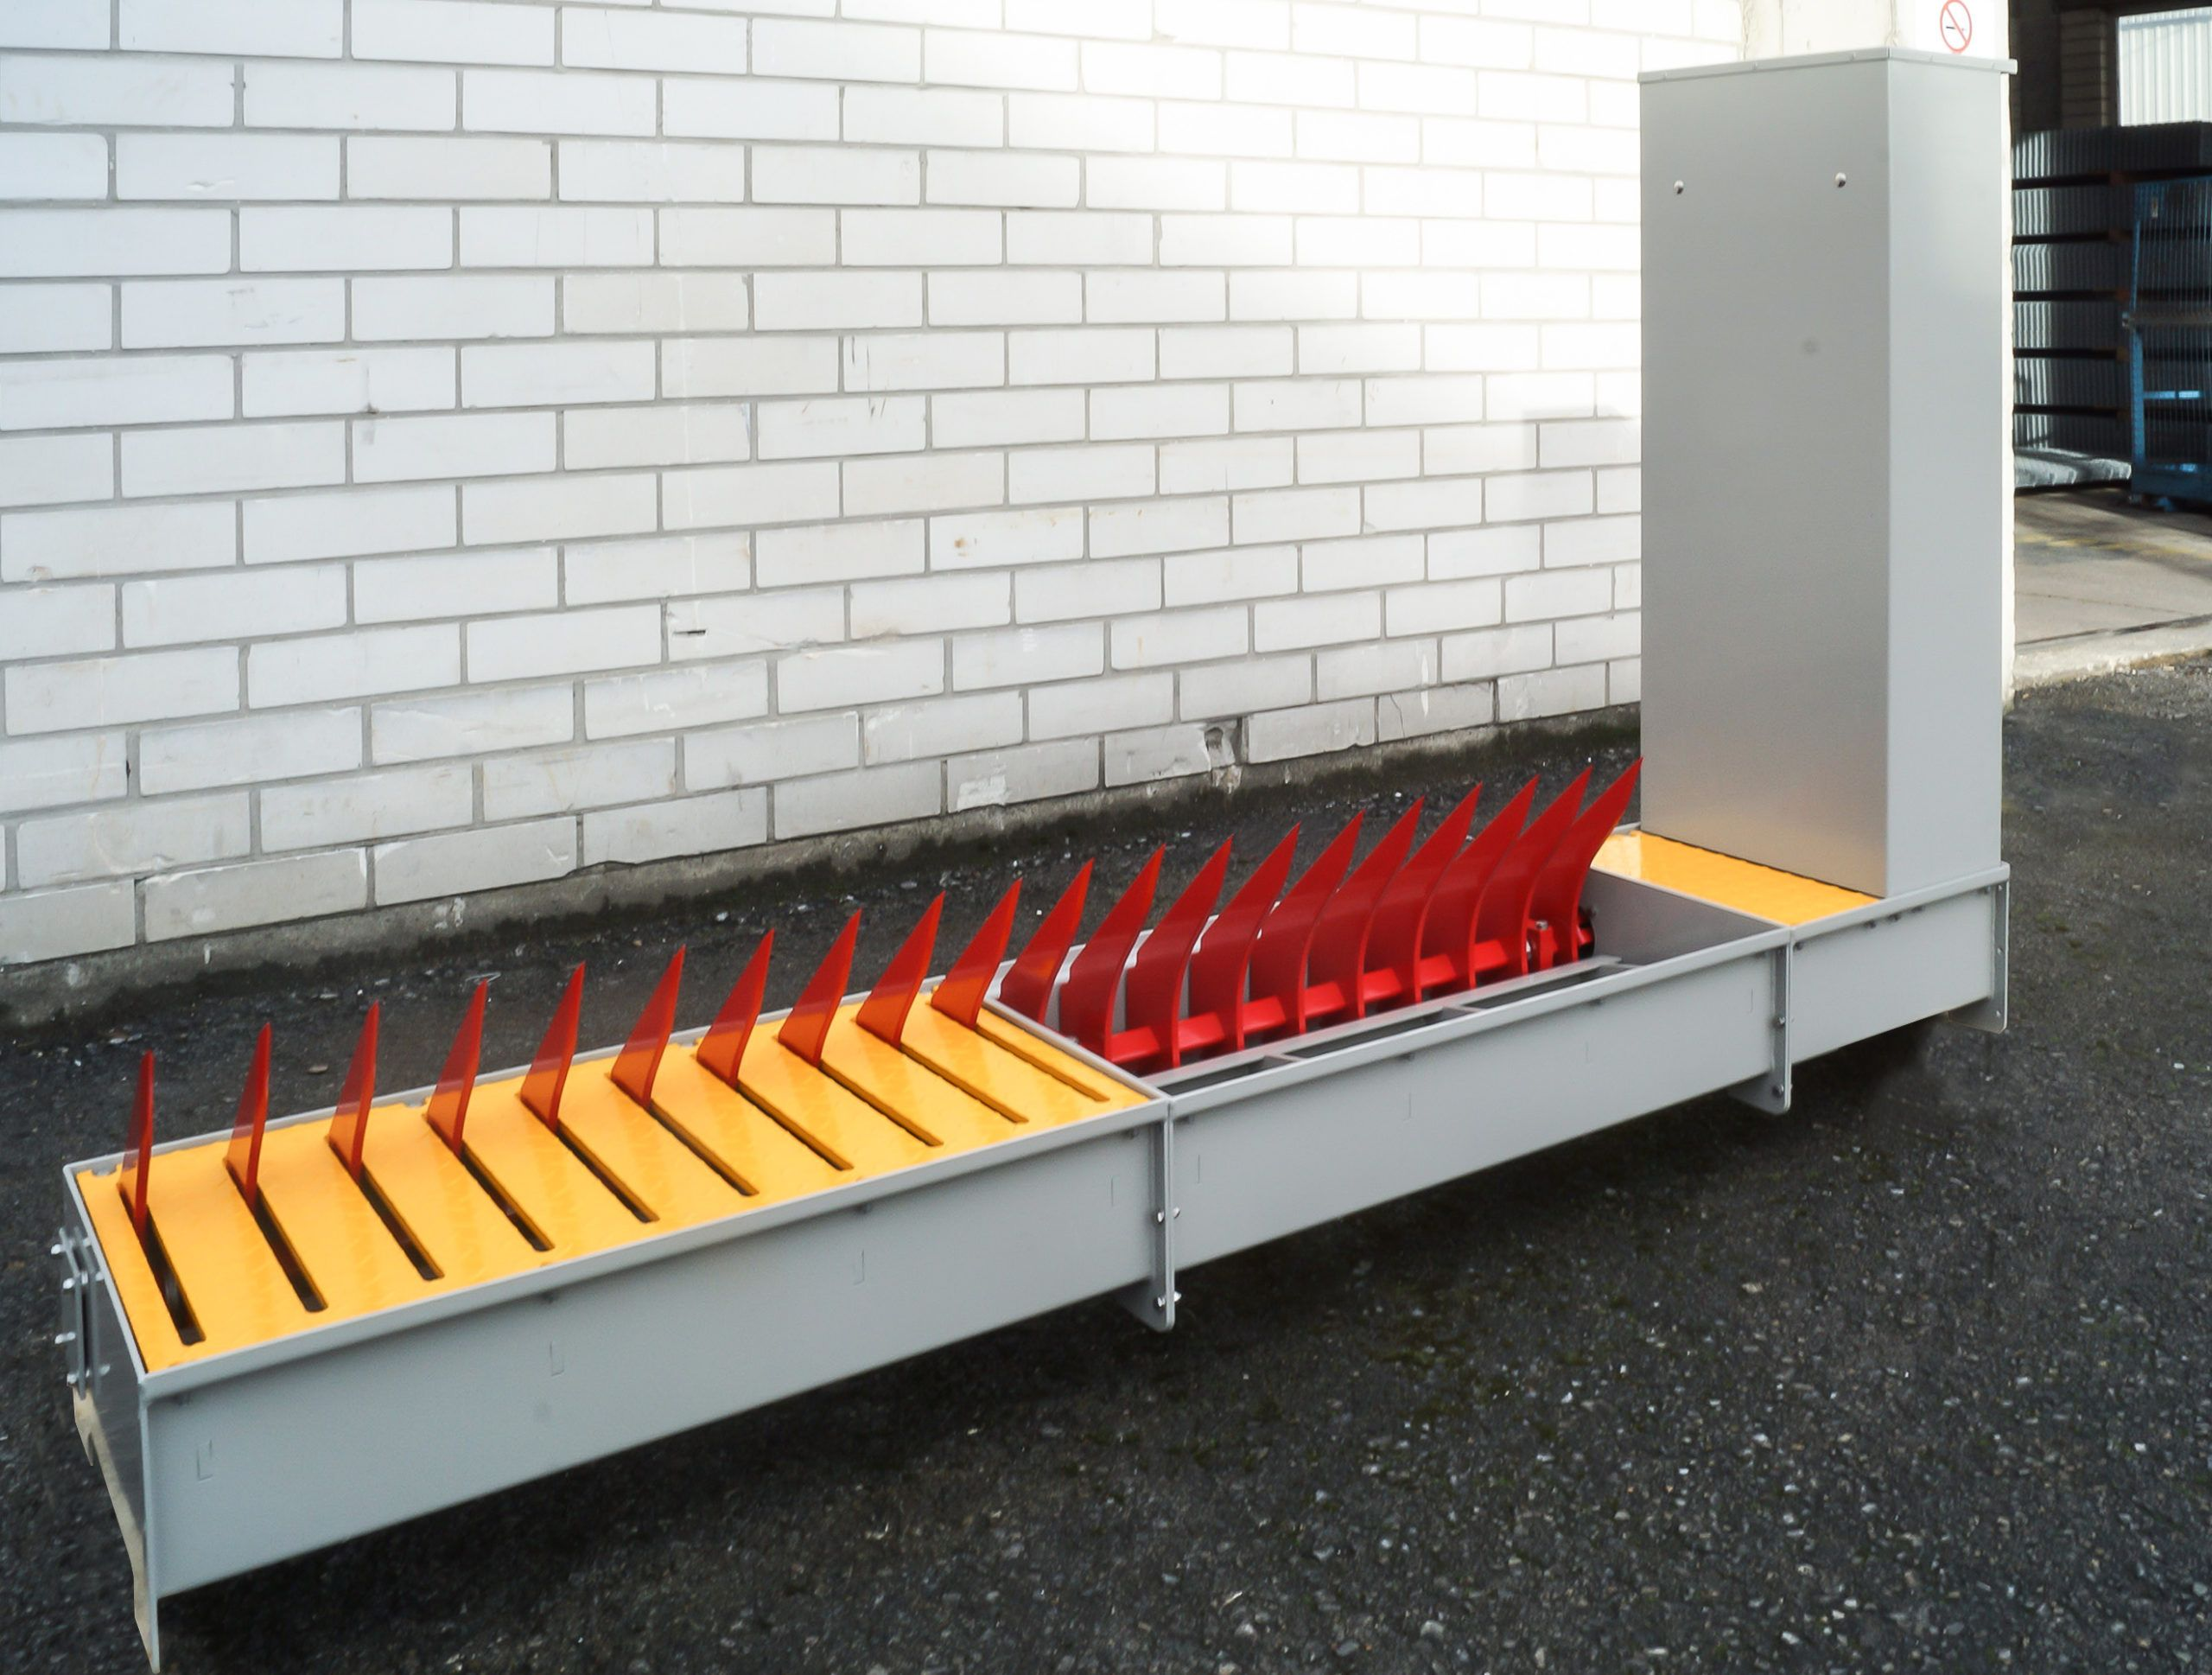 Tyre killers shallow installation depth which makes it particularly suitable for locations with limited available depth due to underground utilities